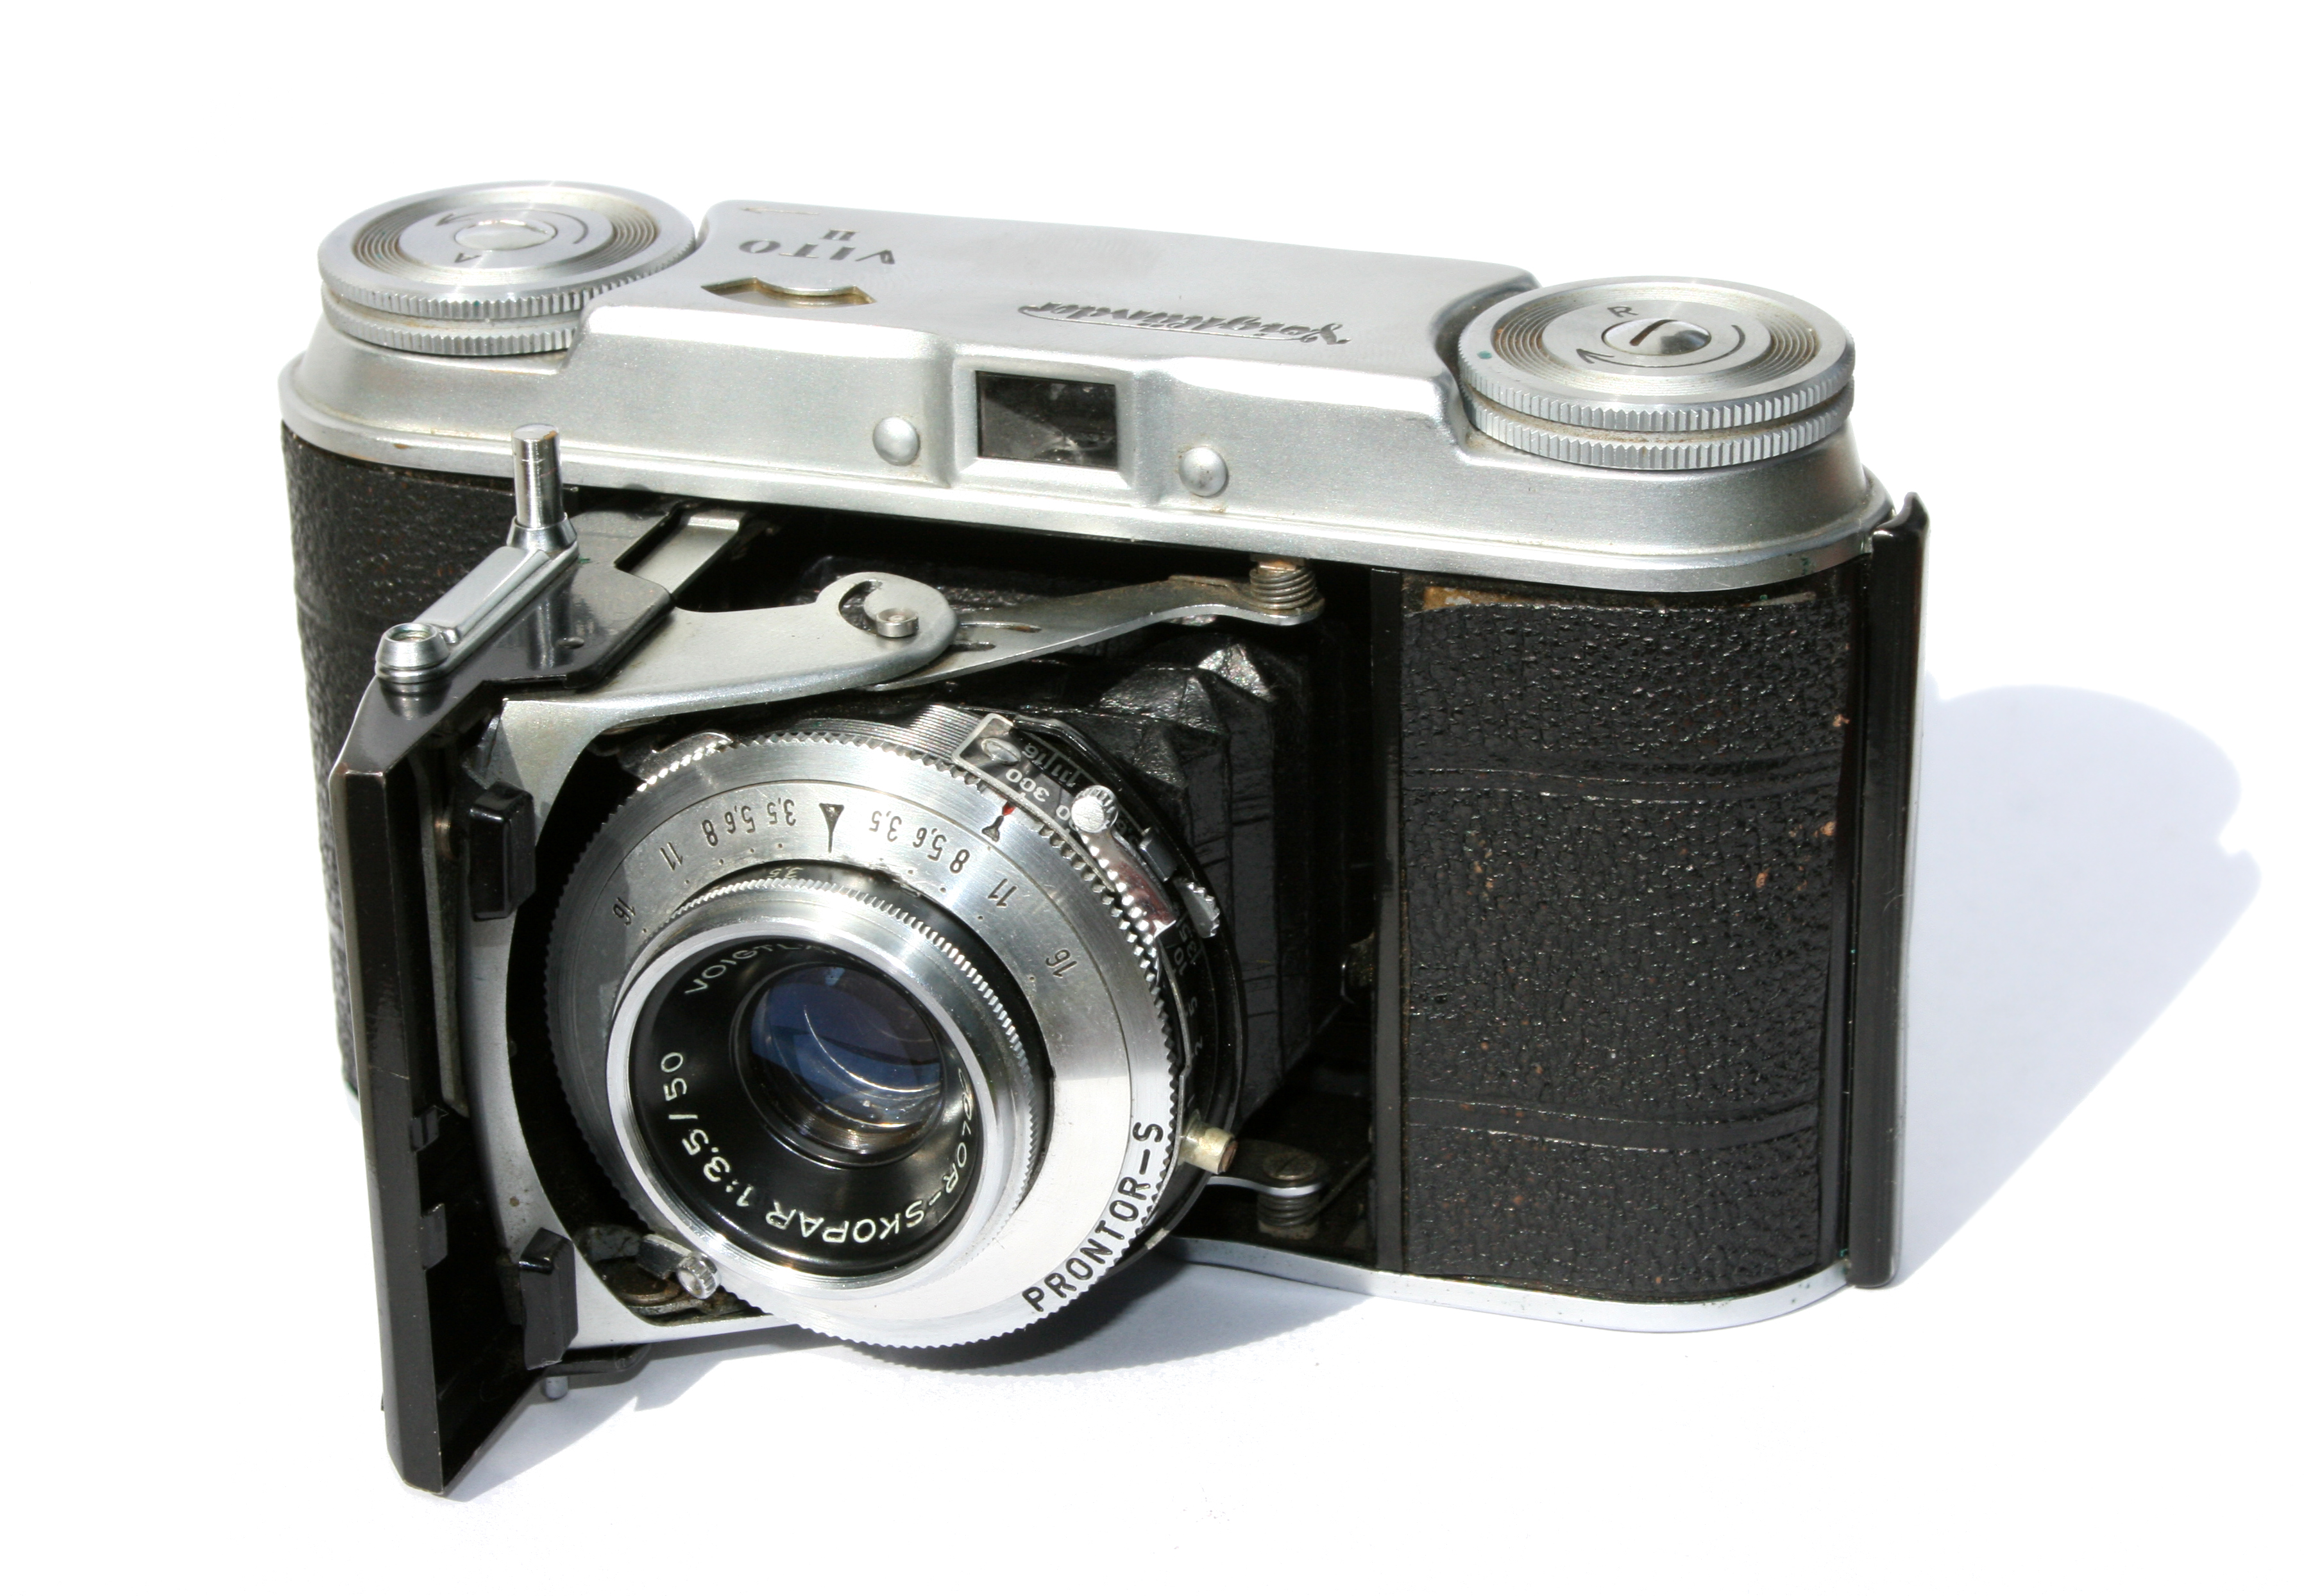 Datei:Voigtlander Vito II Camera Digon3.jpg